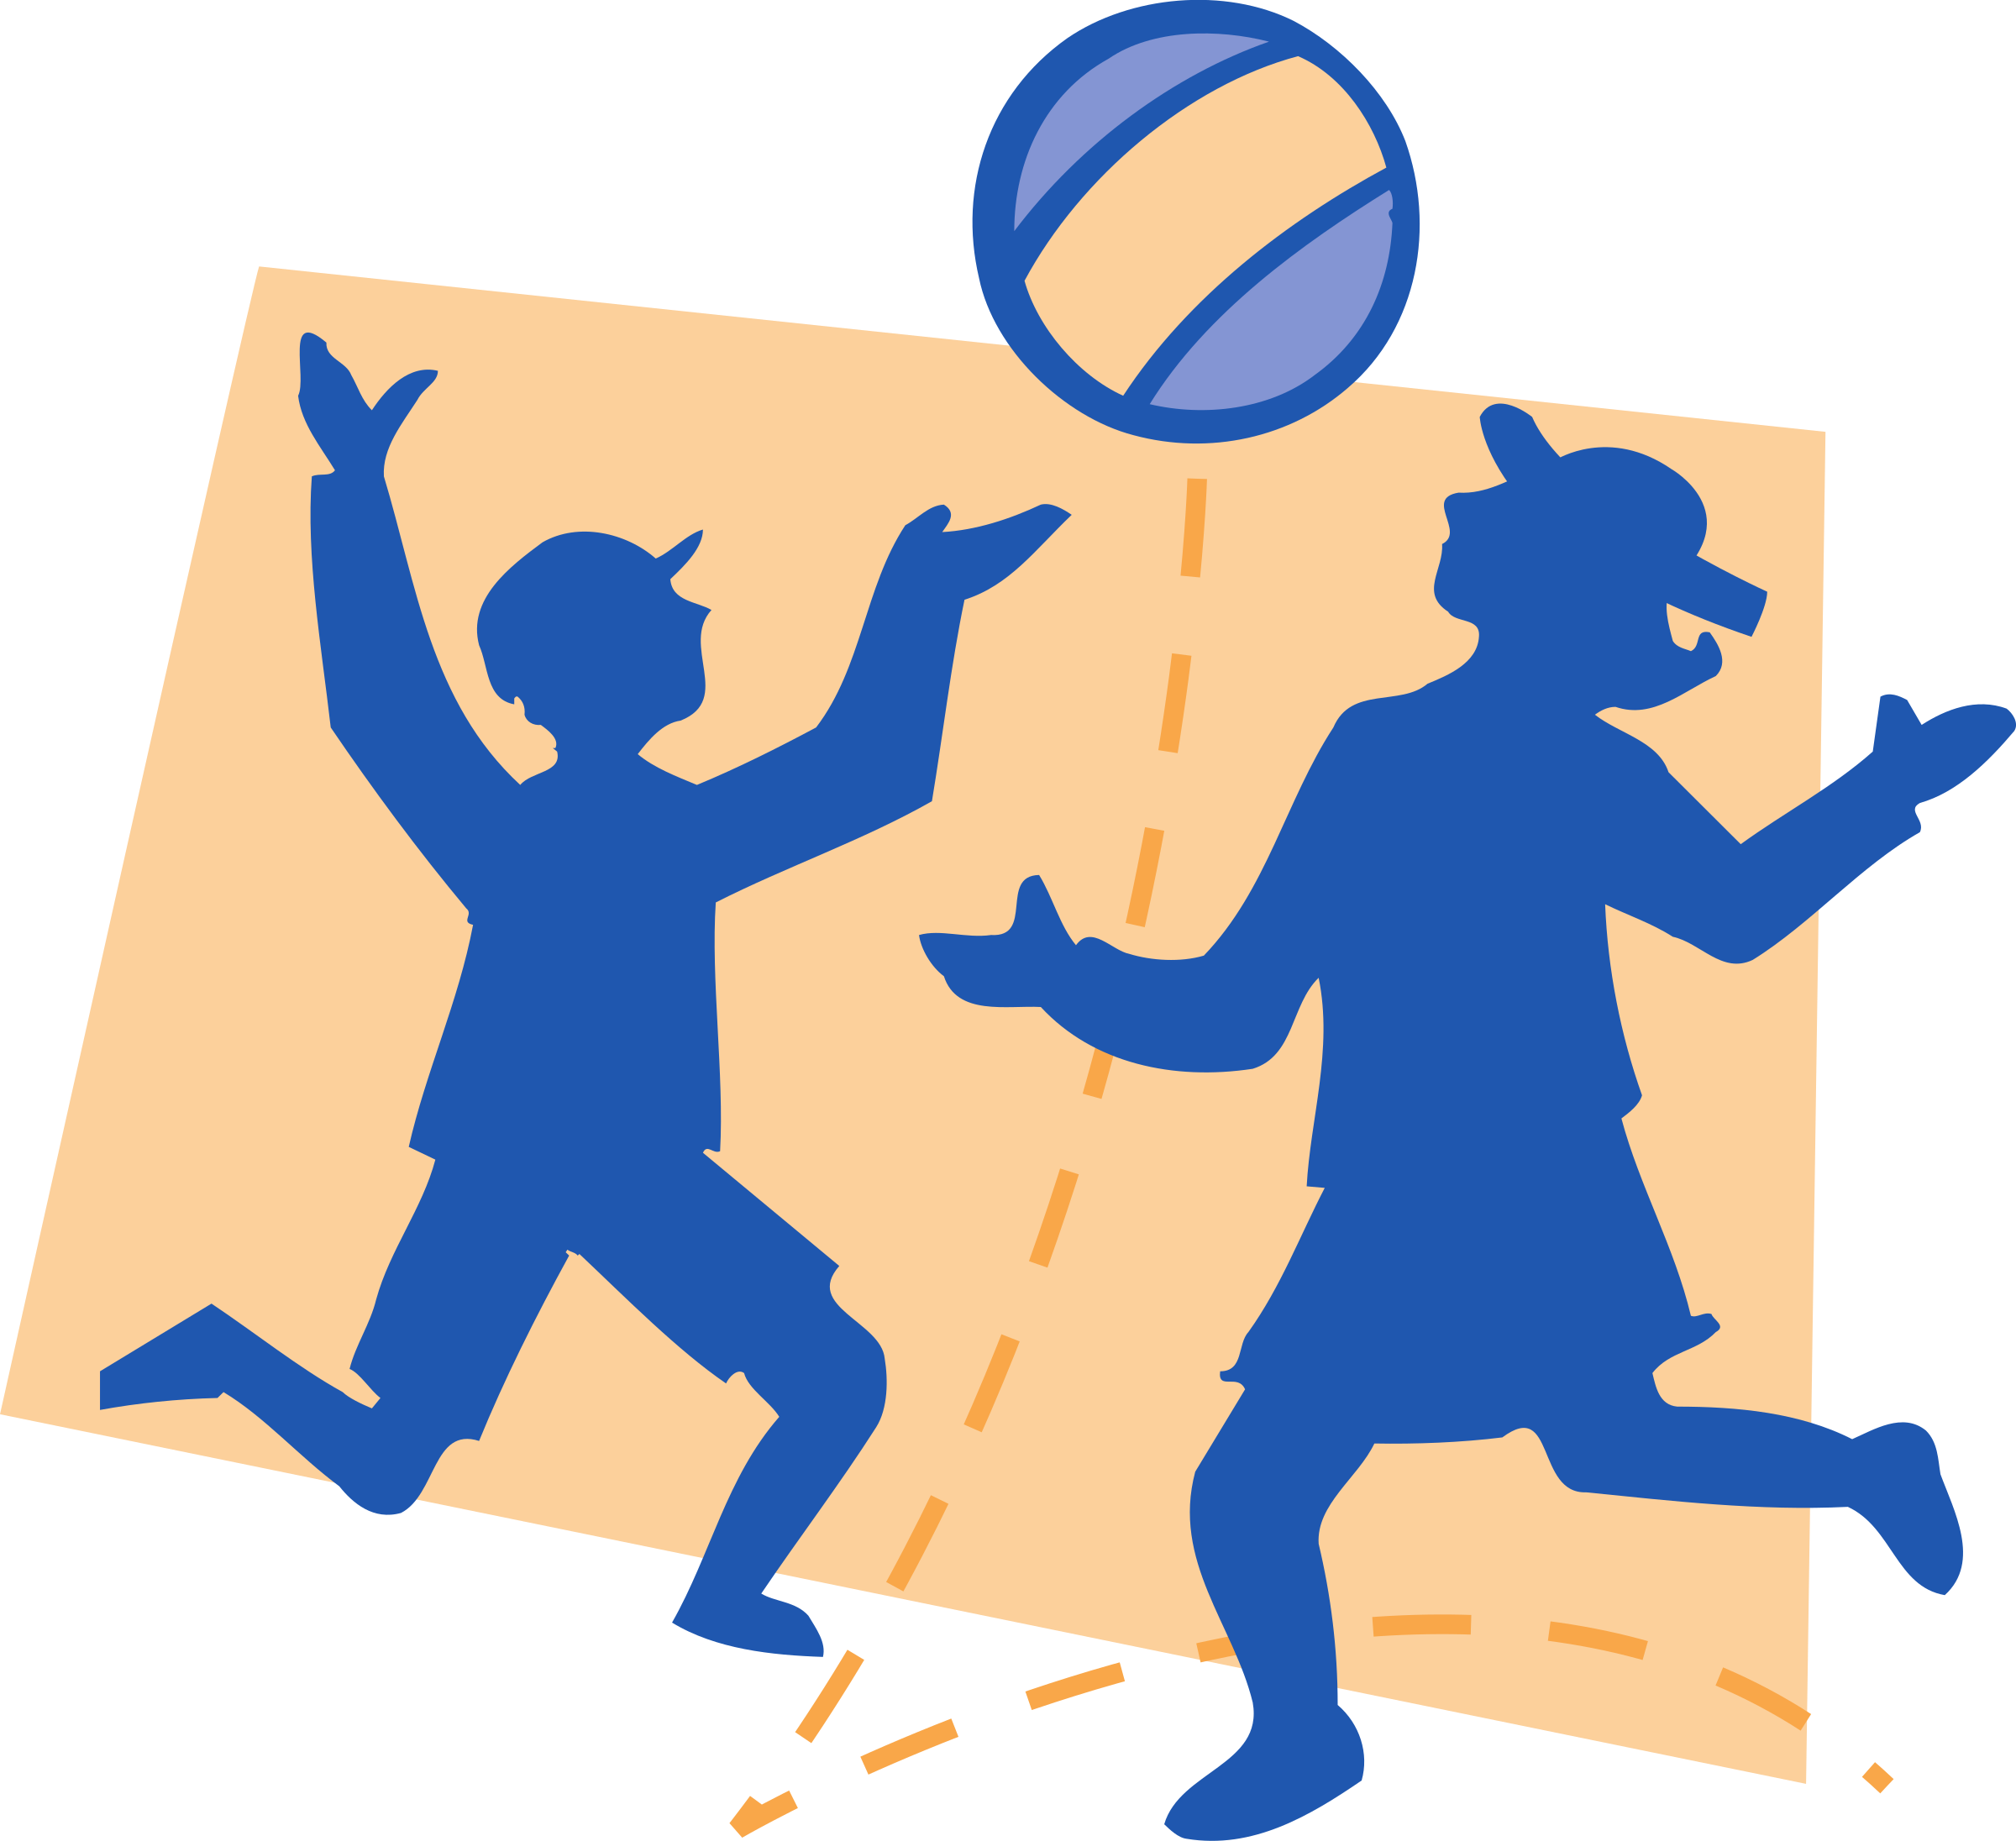 Children playing big image. Volleyball clipart child